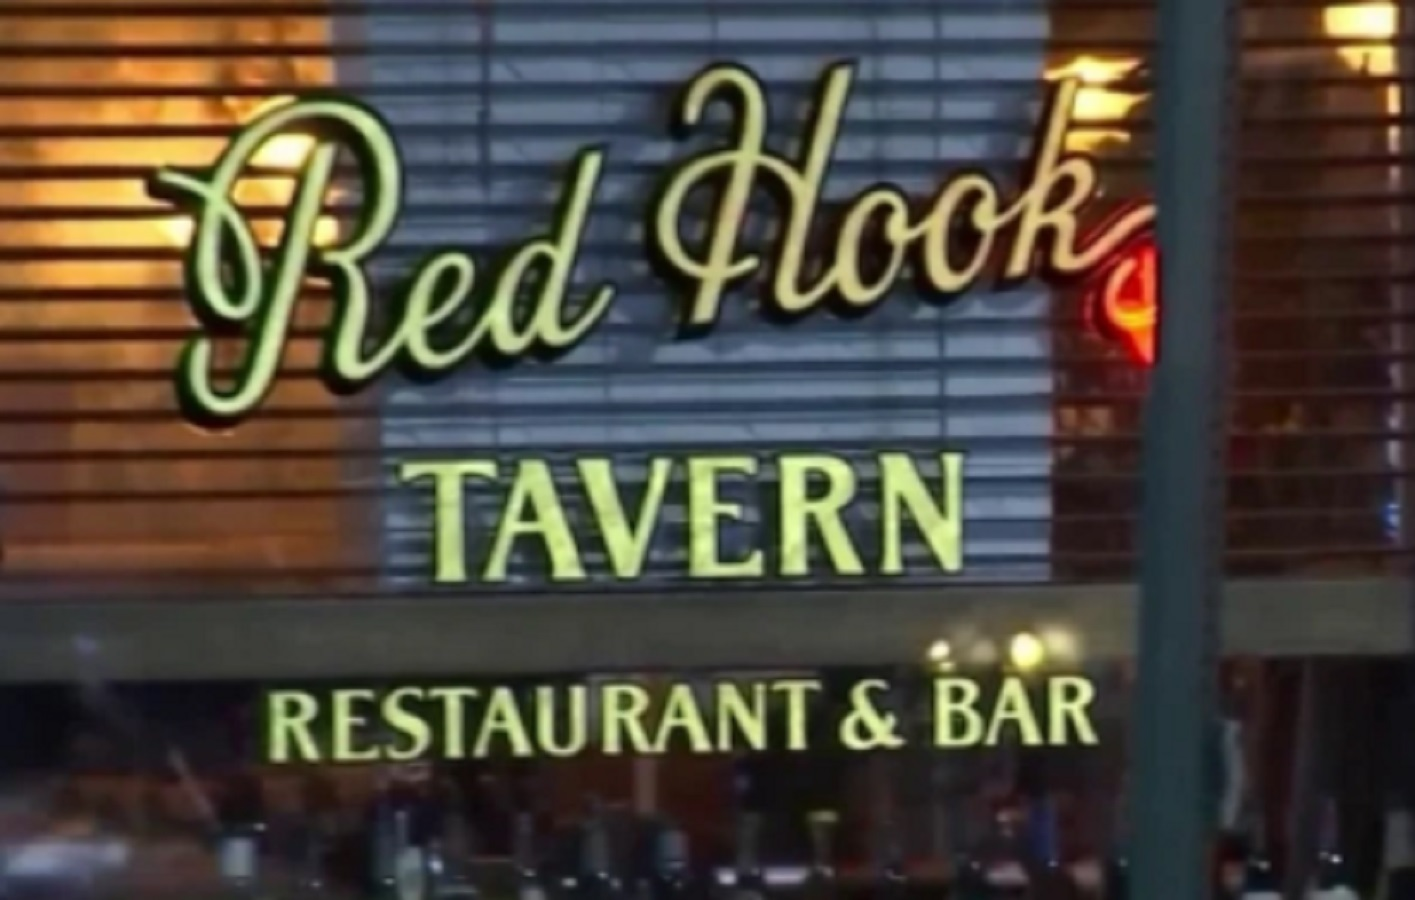 NYC Waitress Fired For Refusing COVID Vaccine Over Fertility Concerns